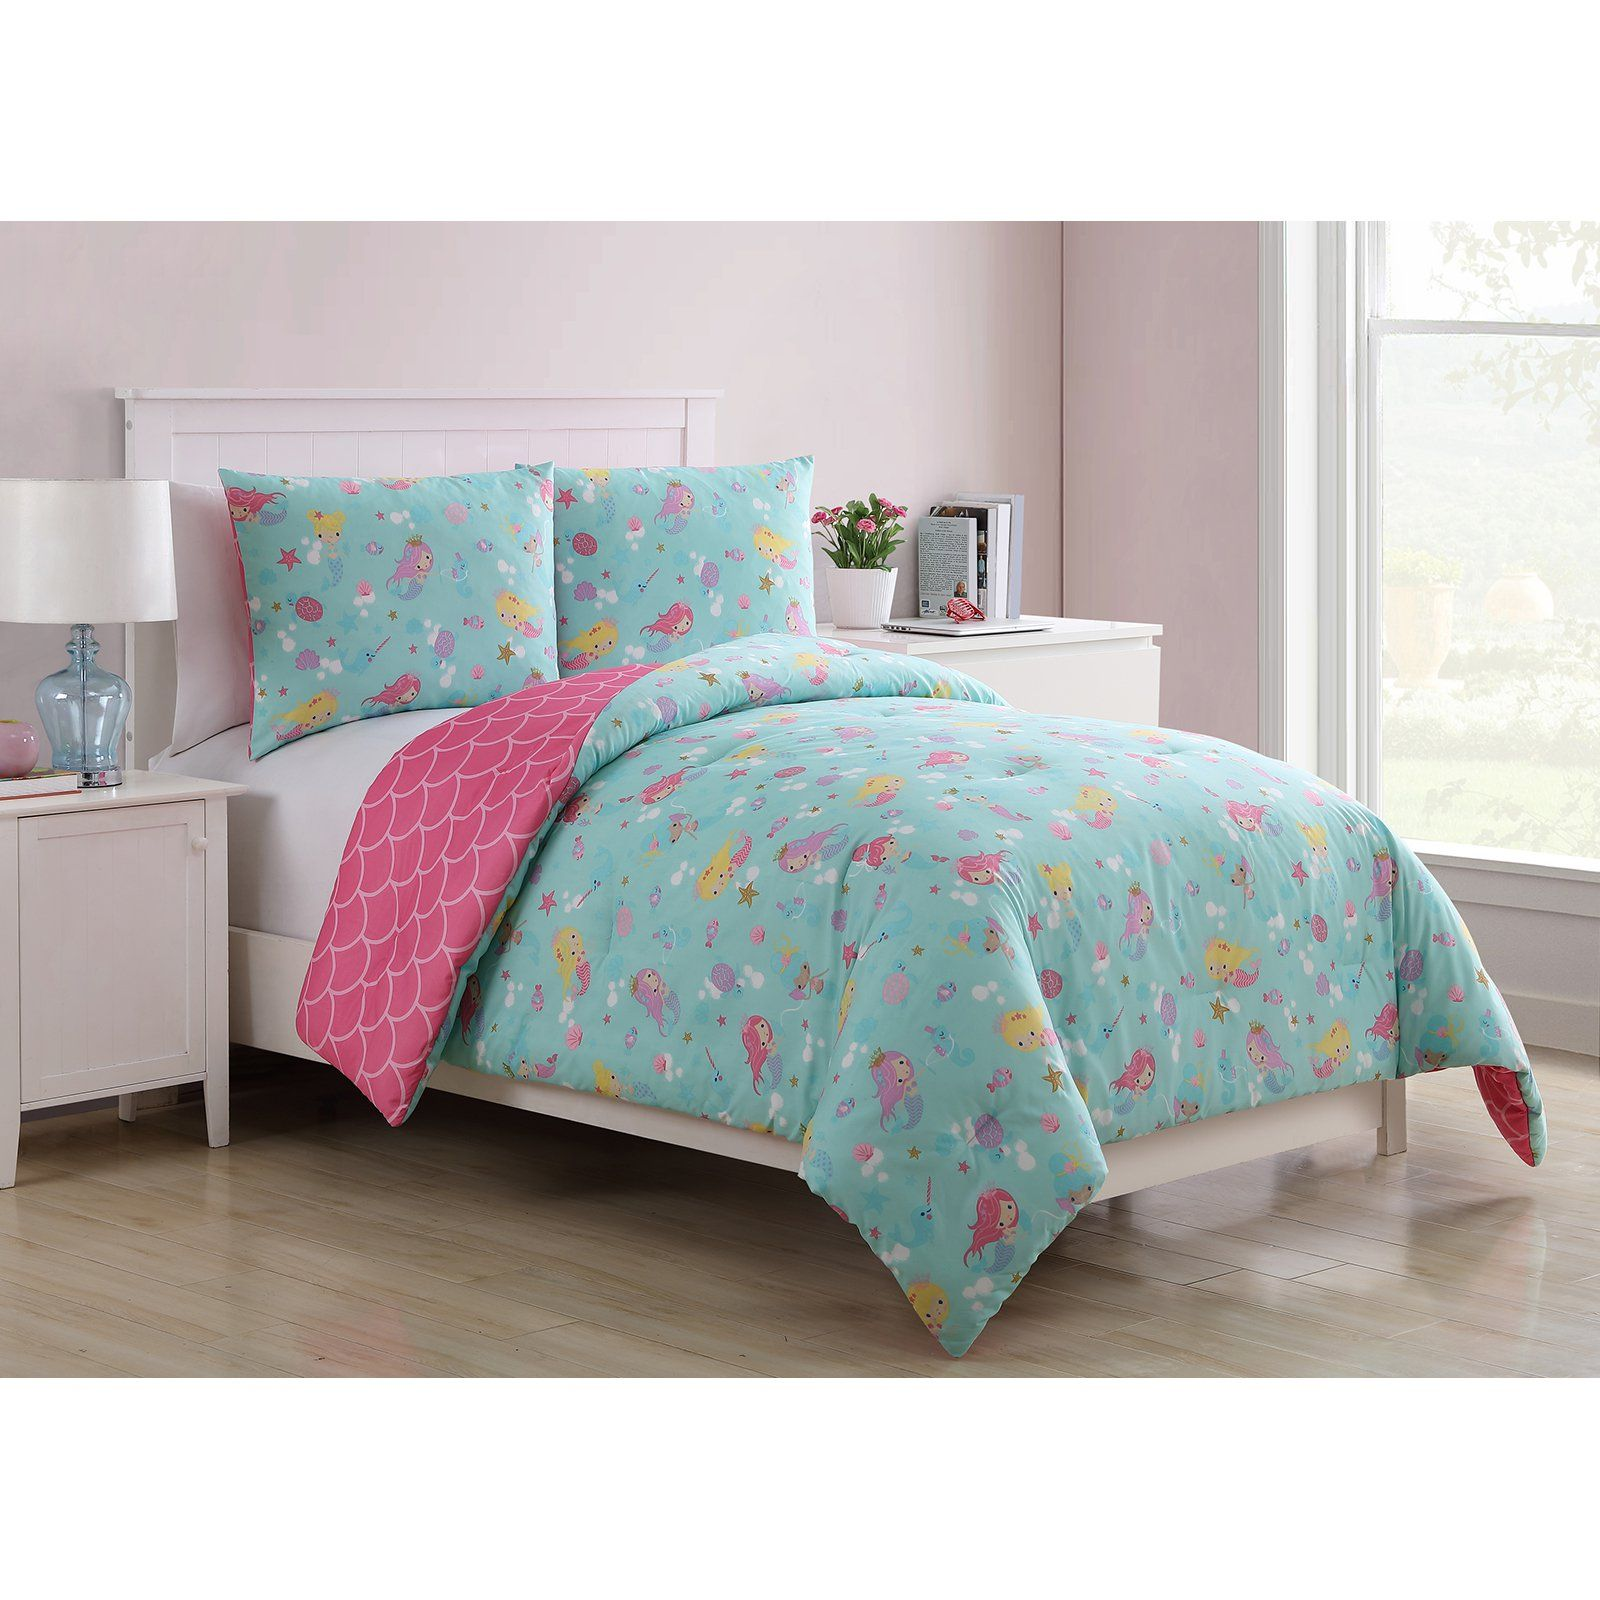 c1113c6c71ac3a Mermaid Princess Reversible Kids Comforter Set by VCNY Home in 2019 ...